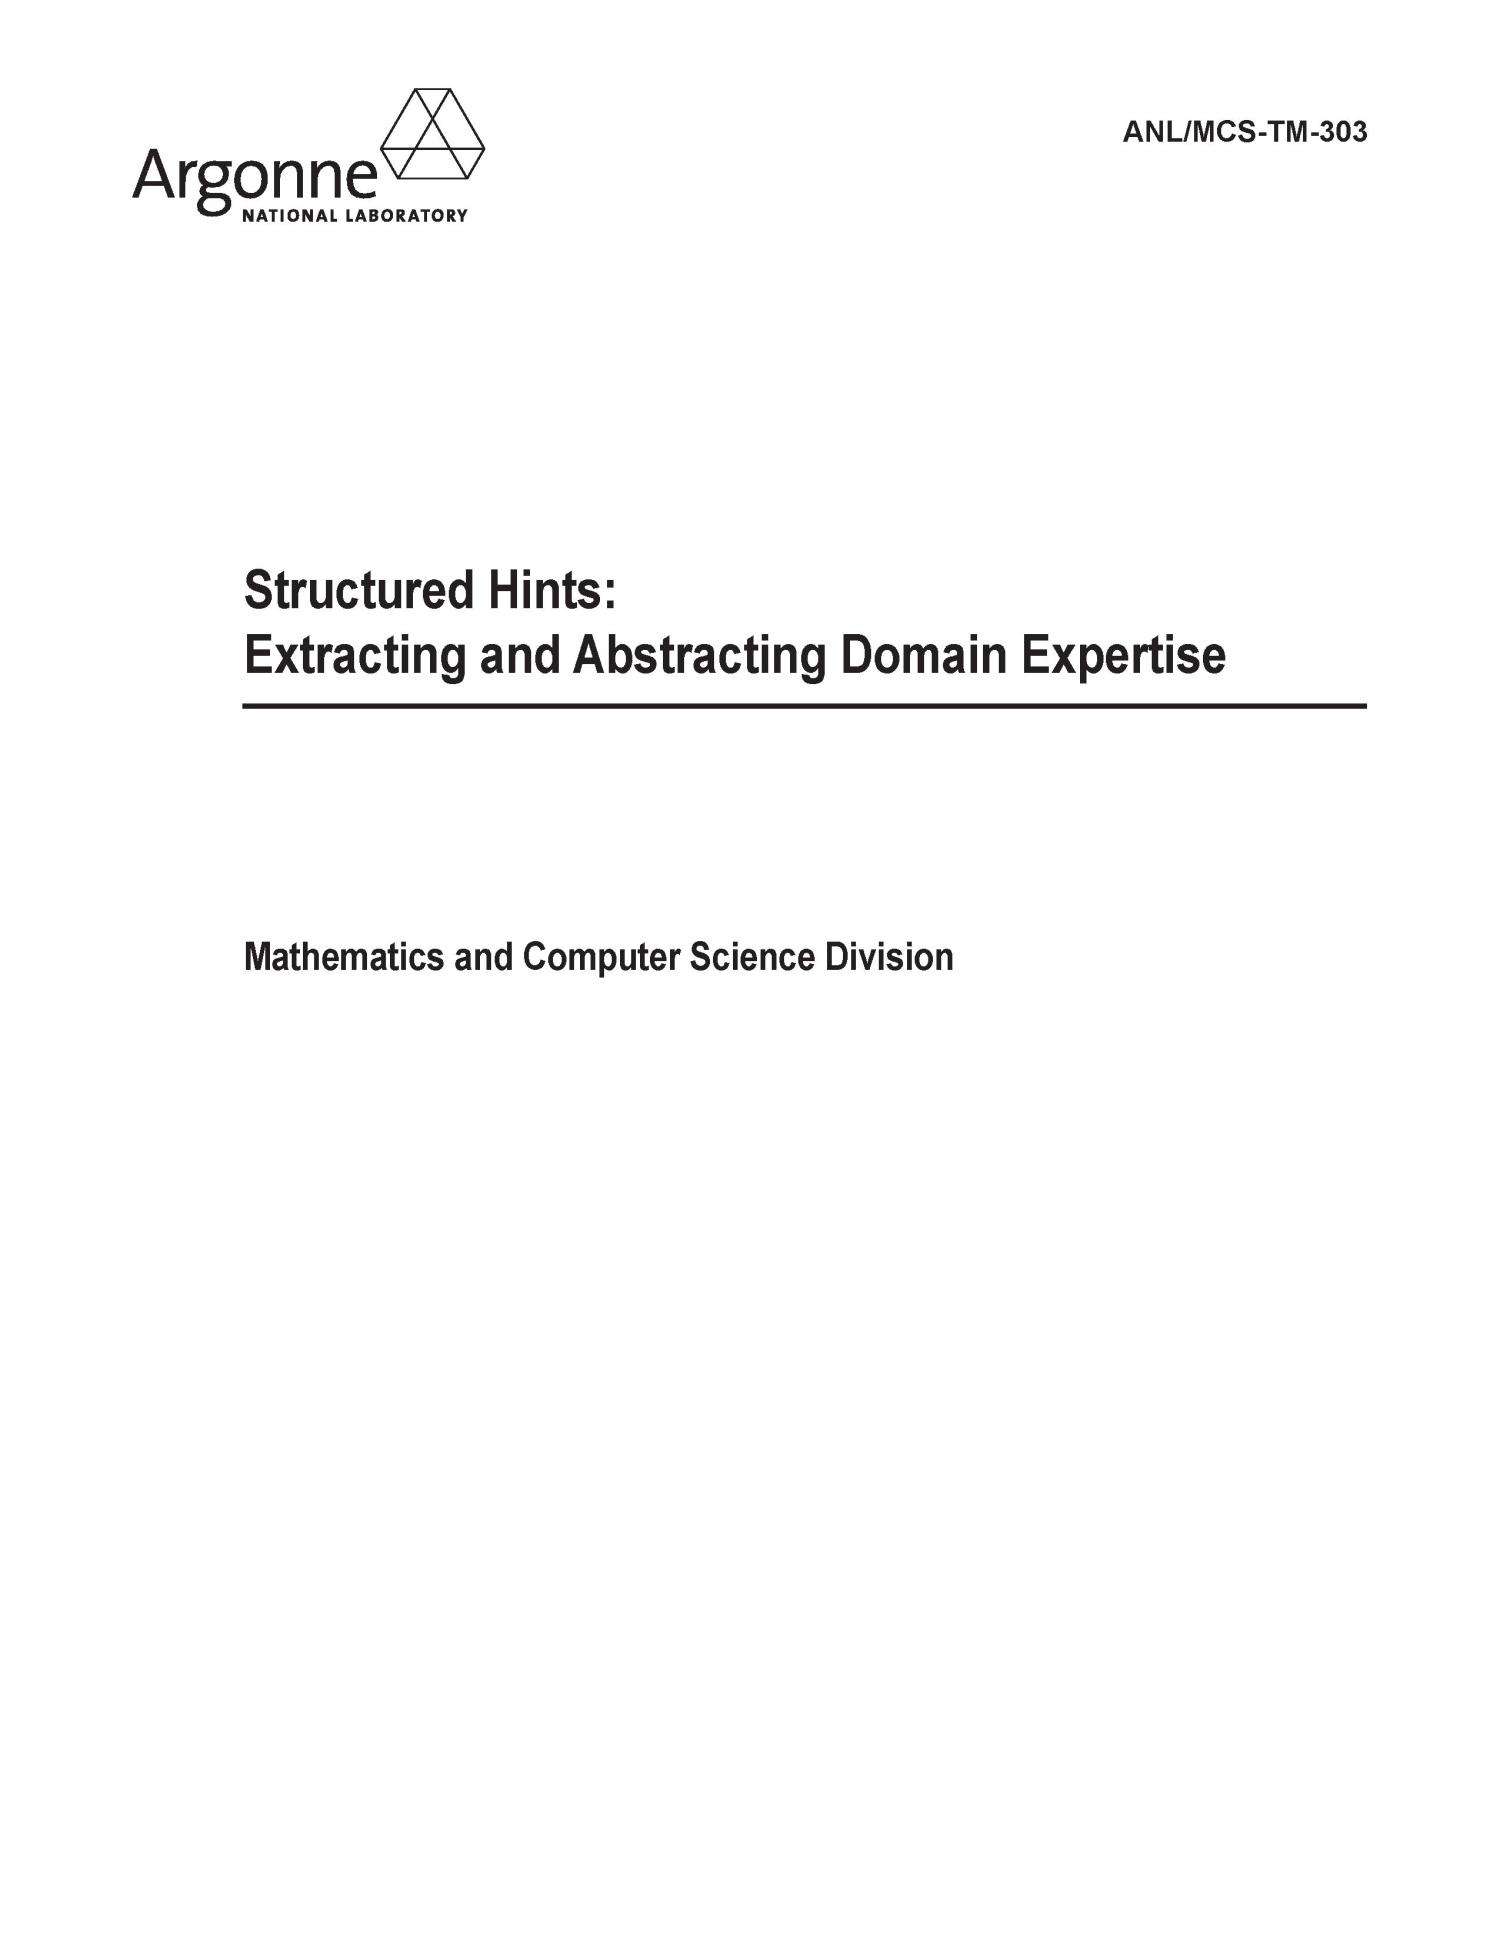 Structured hints : extracting and abstracting domain expertise.                                                                                                      [Sequence #]: 1 of 13